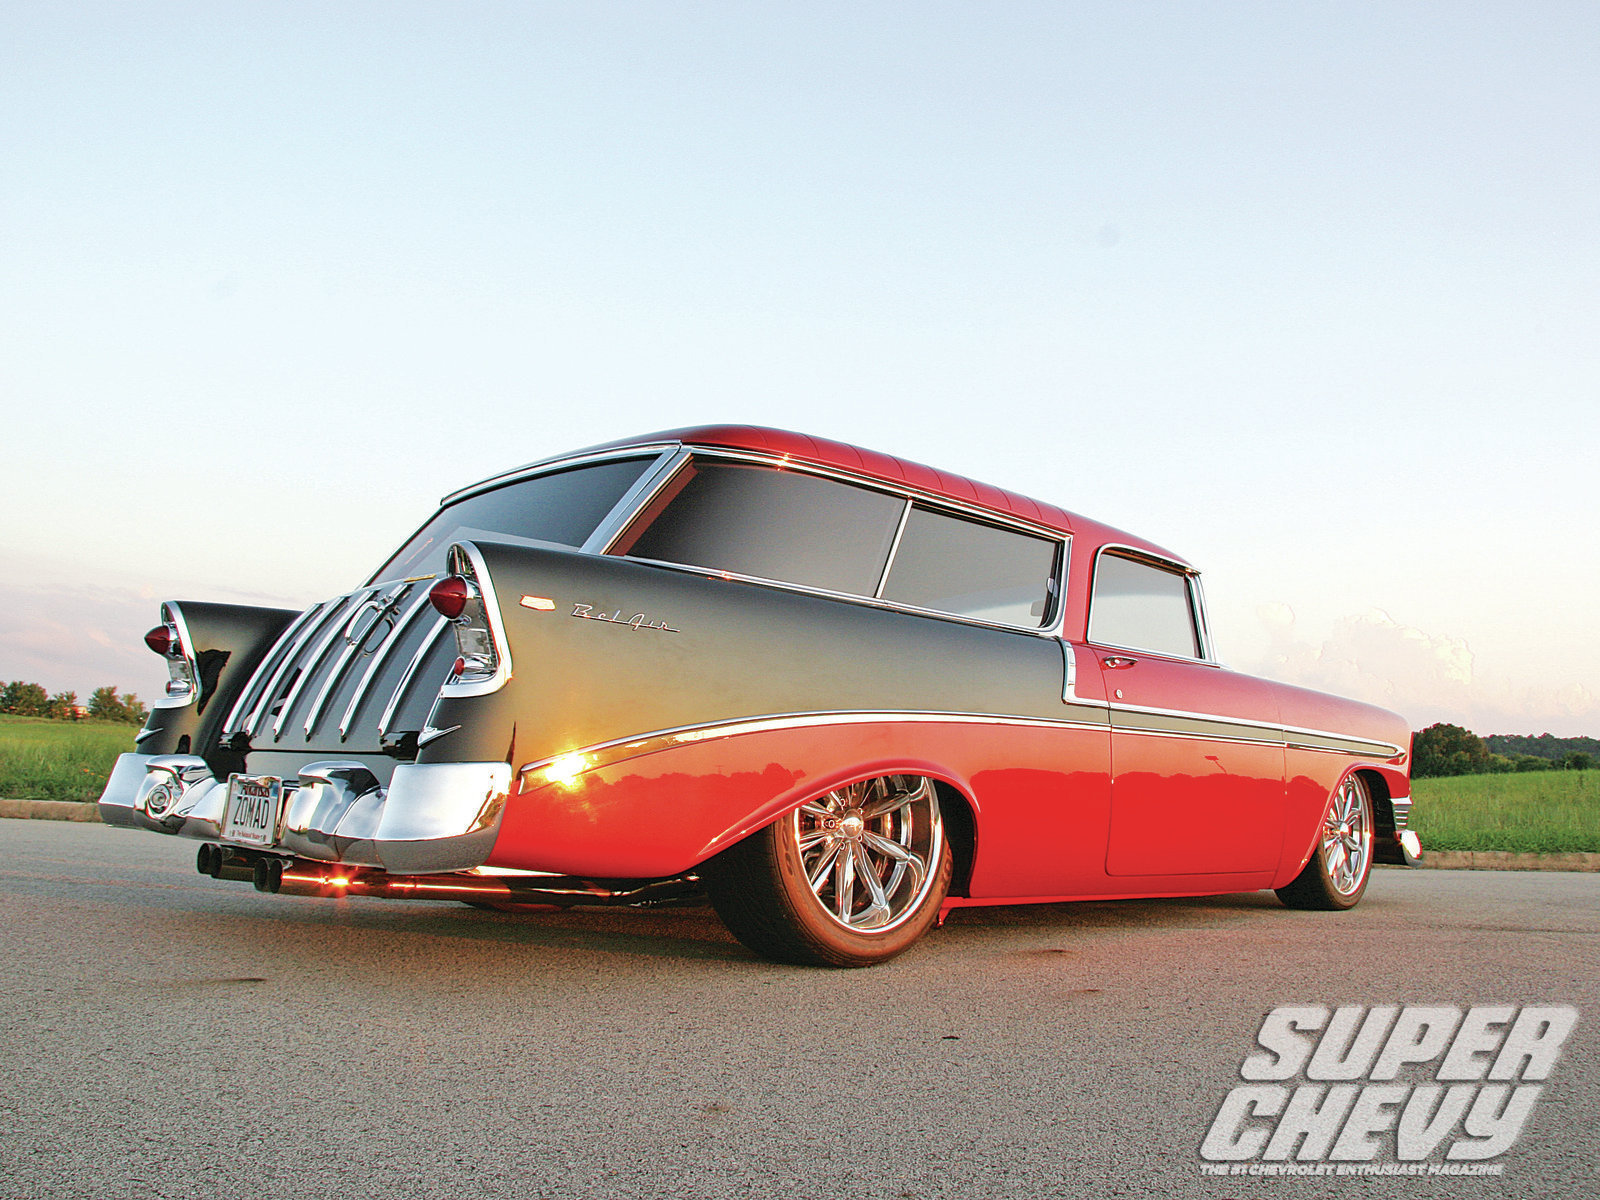 1600x1200 - Chevrolet Nomad Wallpapers 7